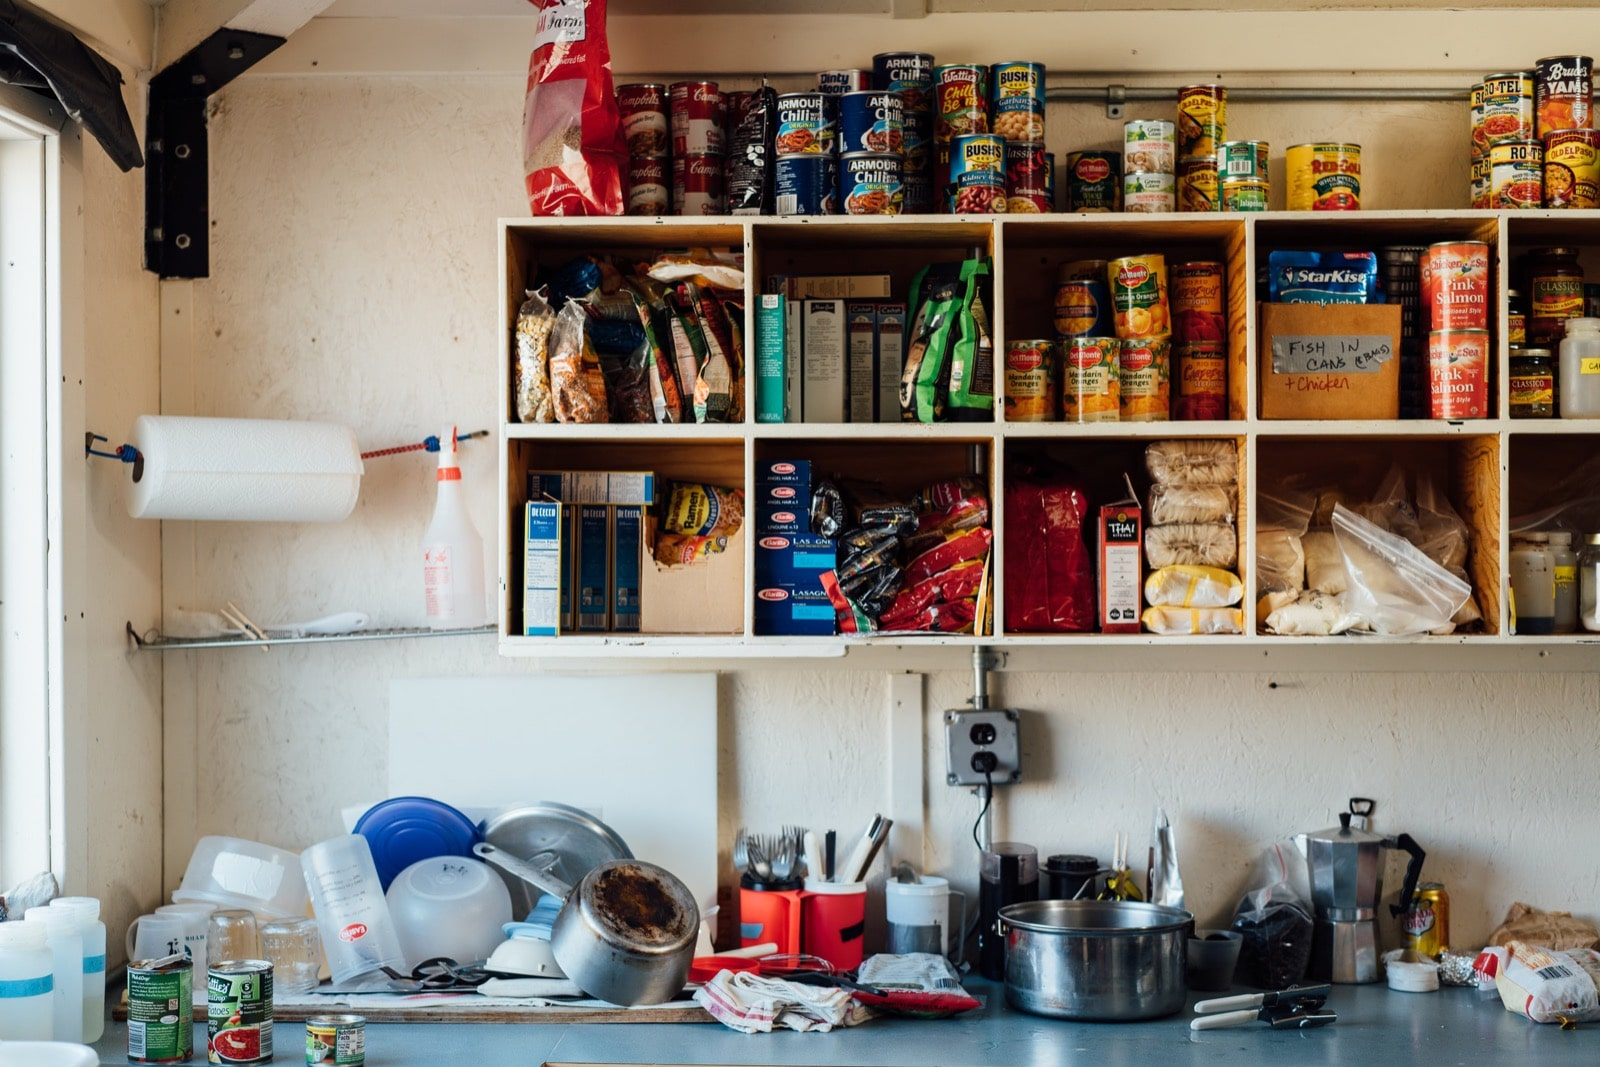 The kitchen at the F6 hut. Photo by Ariel Zych